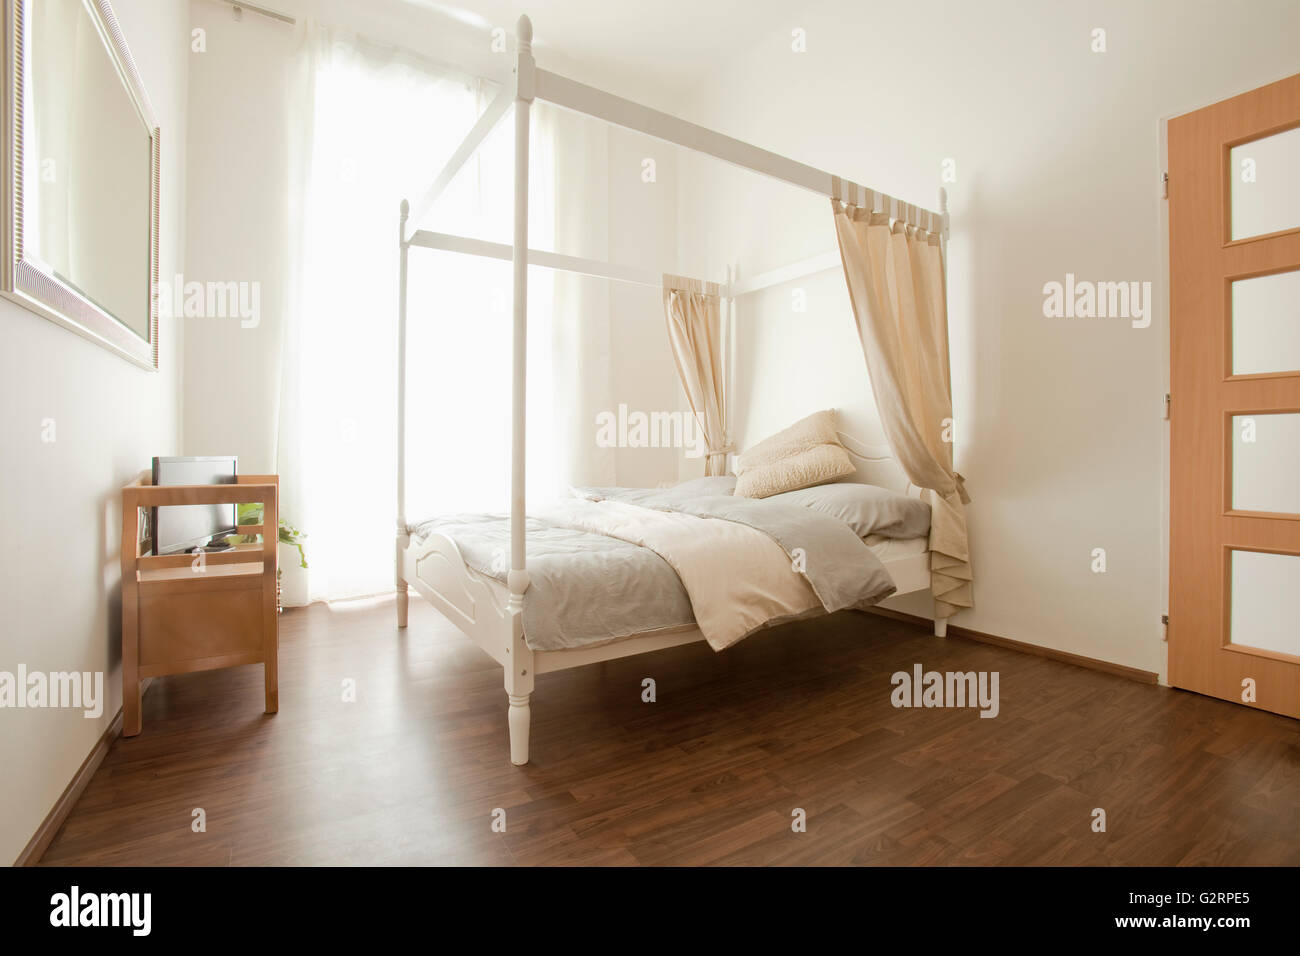 Apartment Interior- Bedroom with Four Poster Bed. - Stock Image